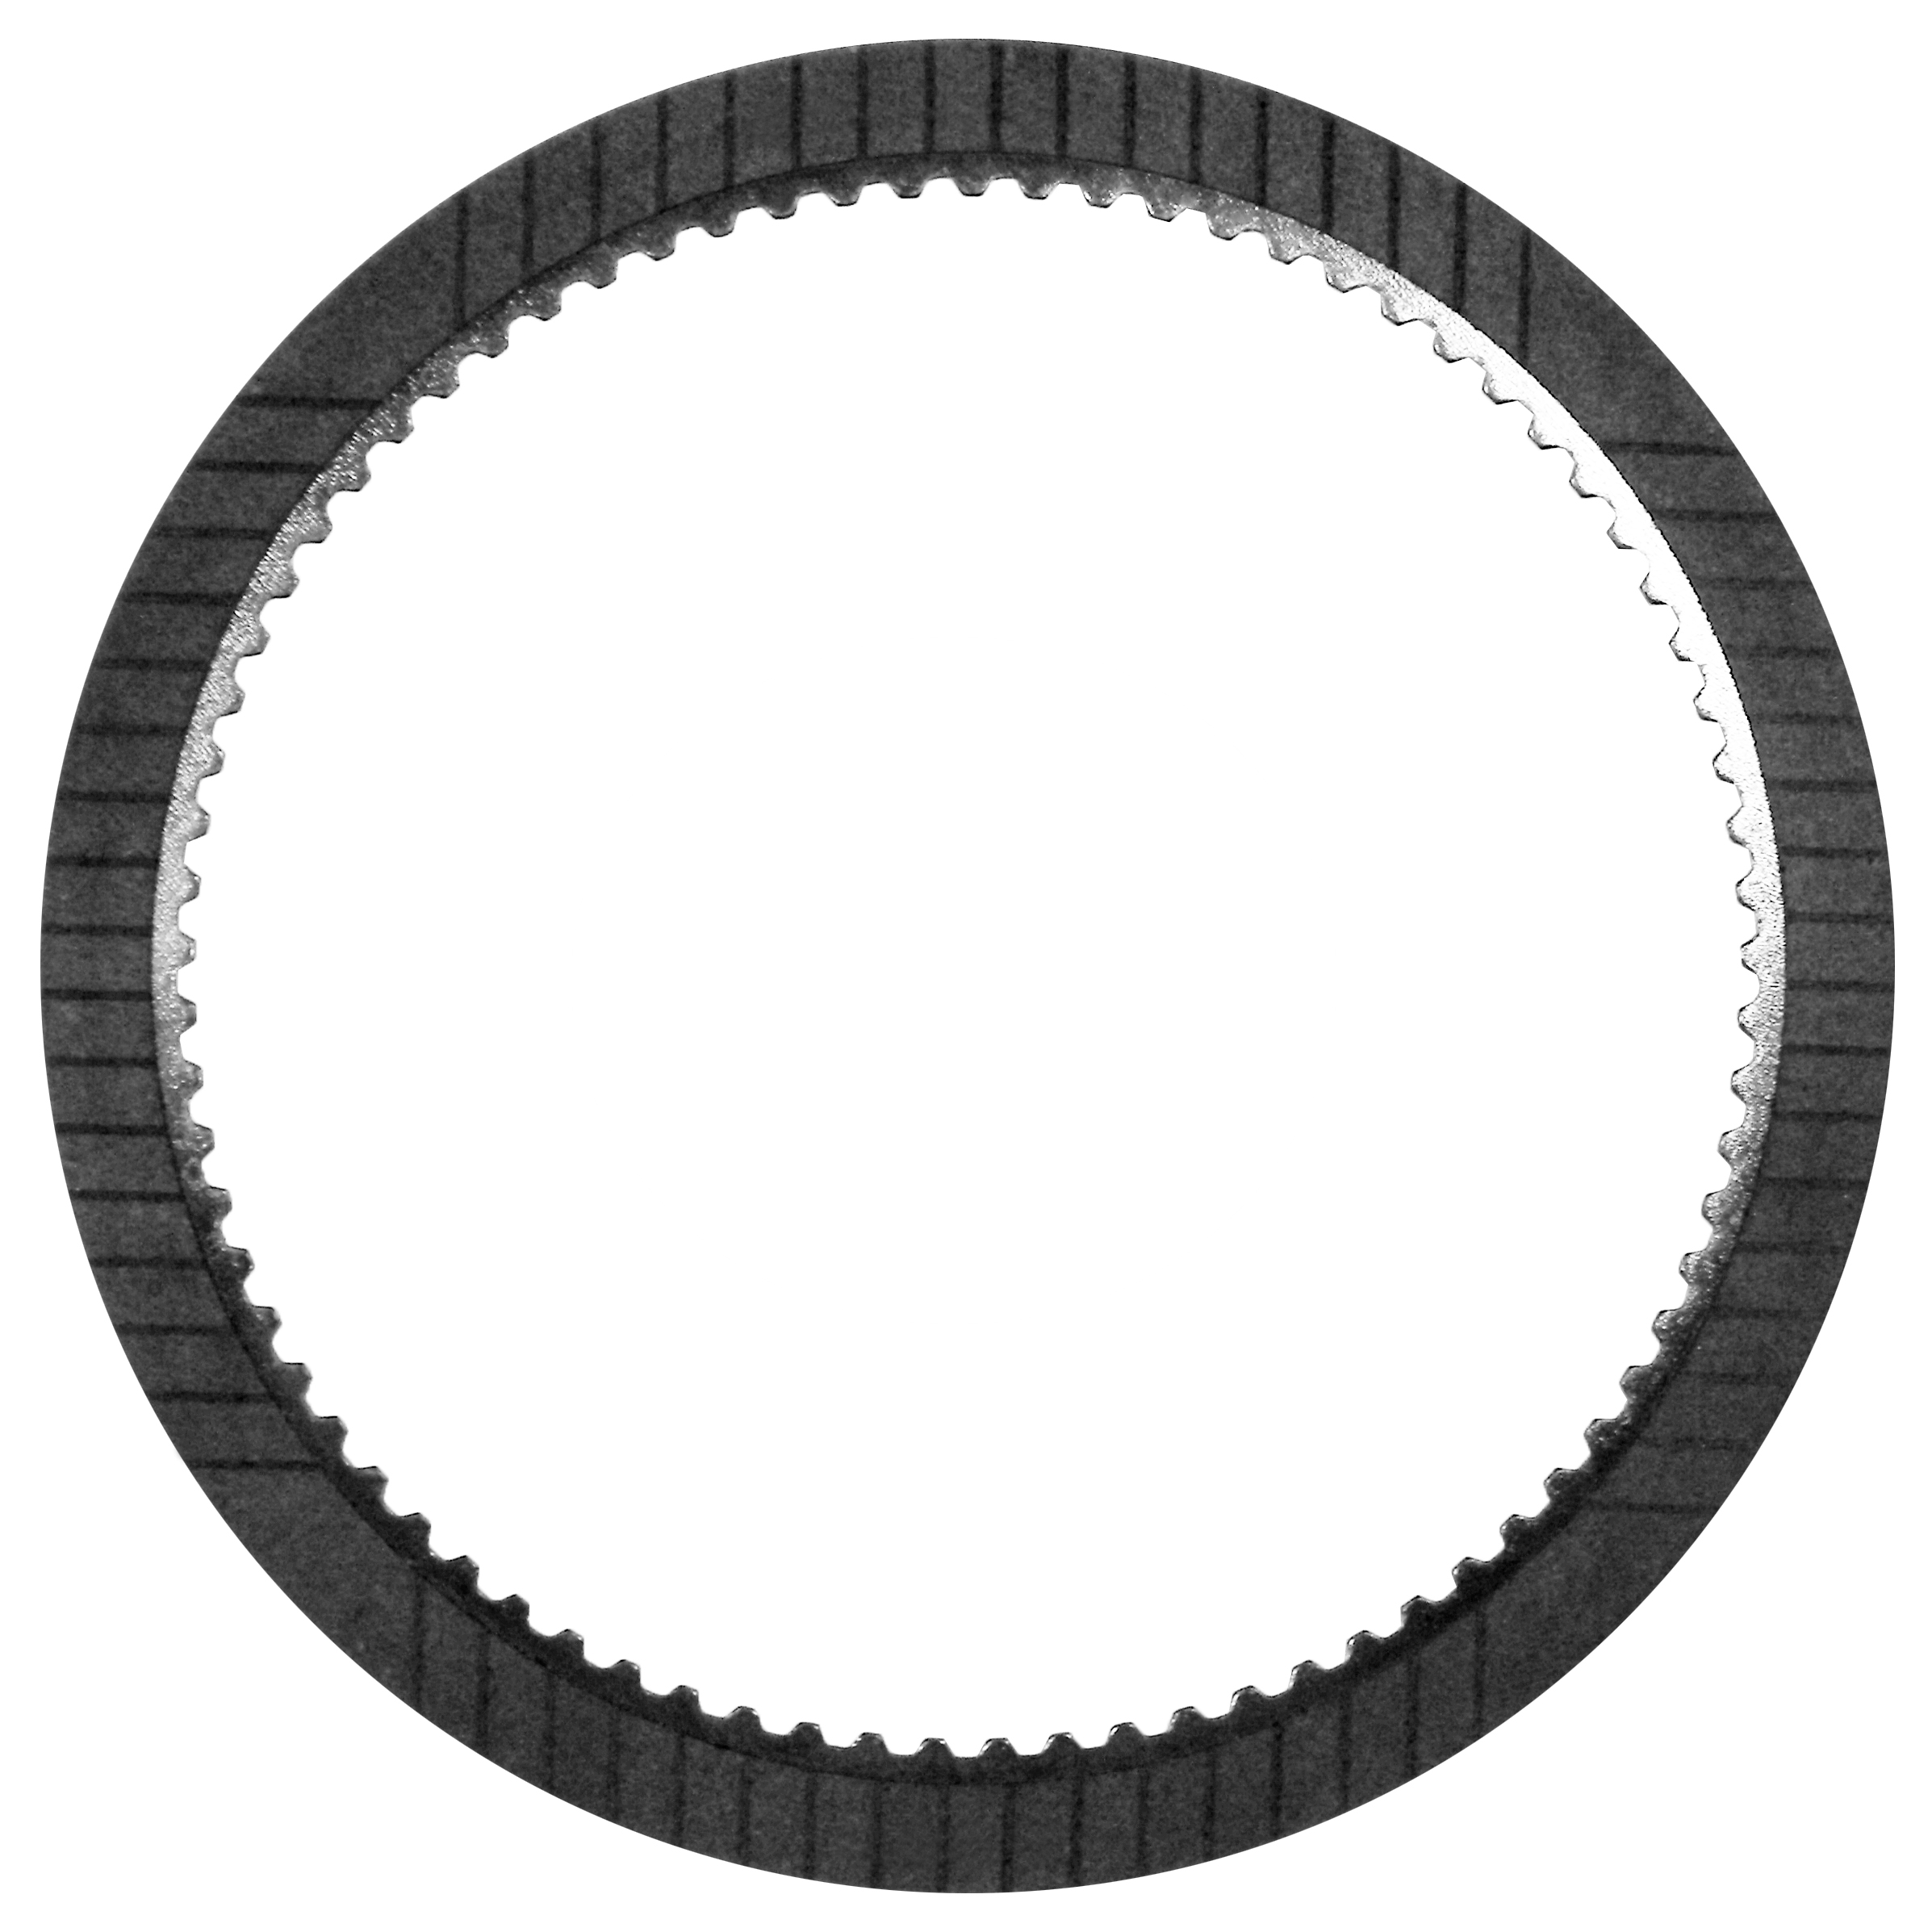 R810945 | 1995-ON Friction Clutch Plate OE Replacement C5